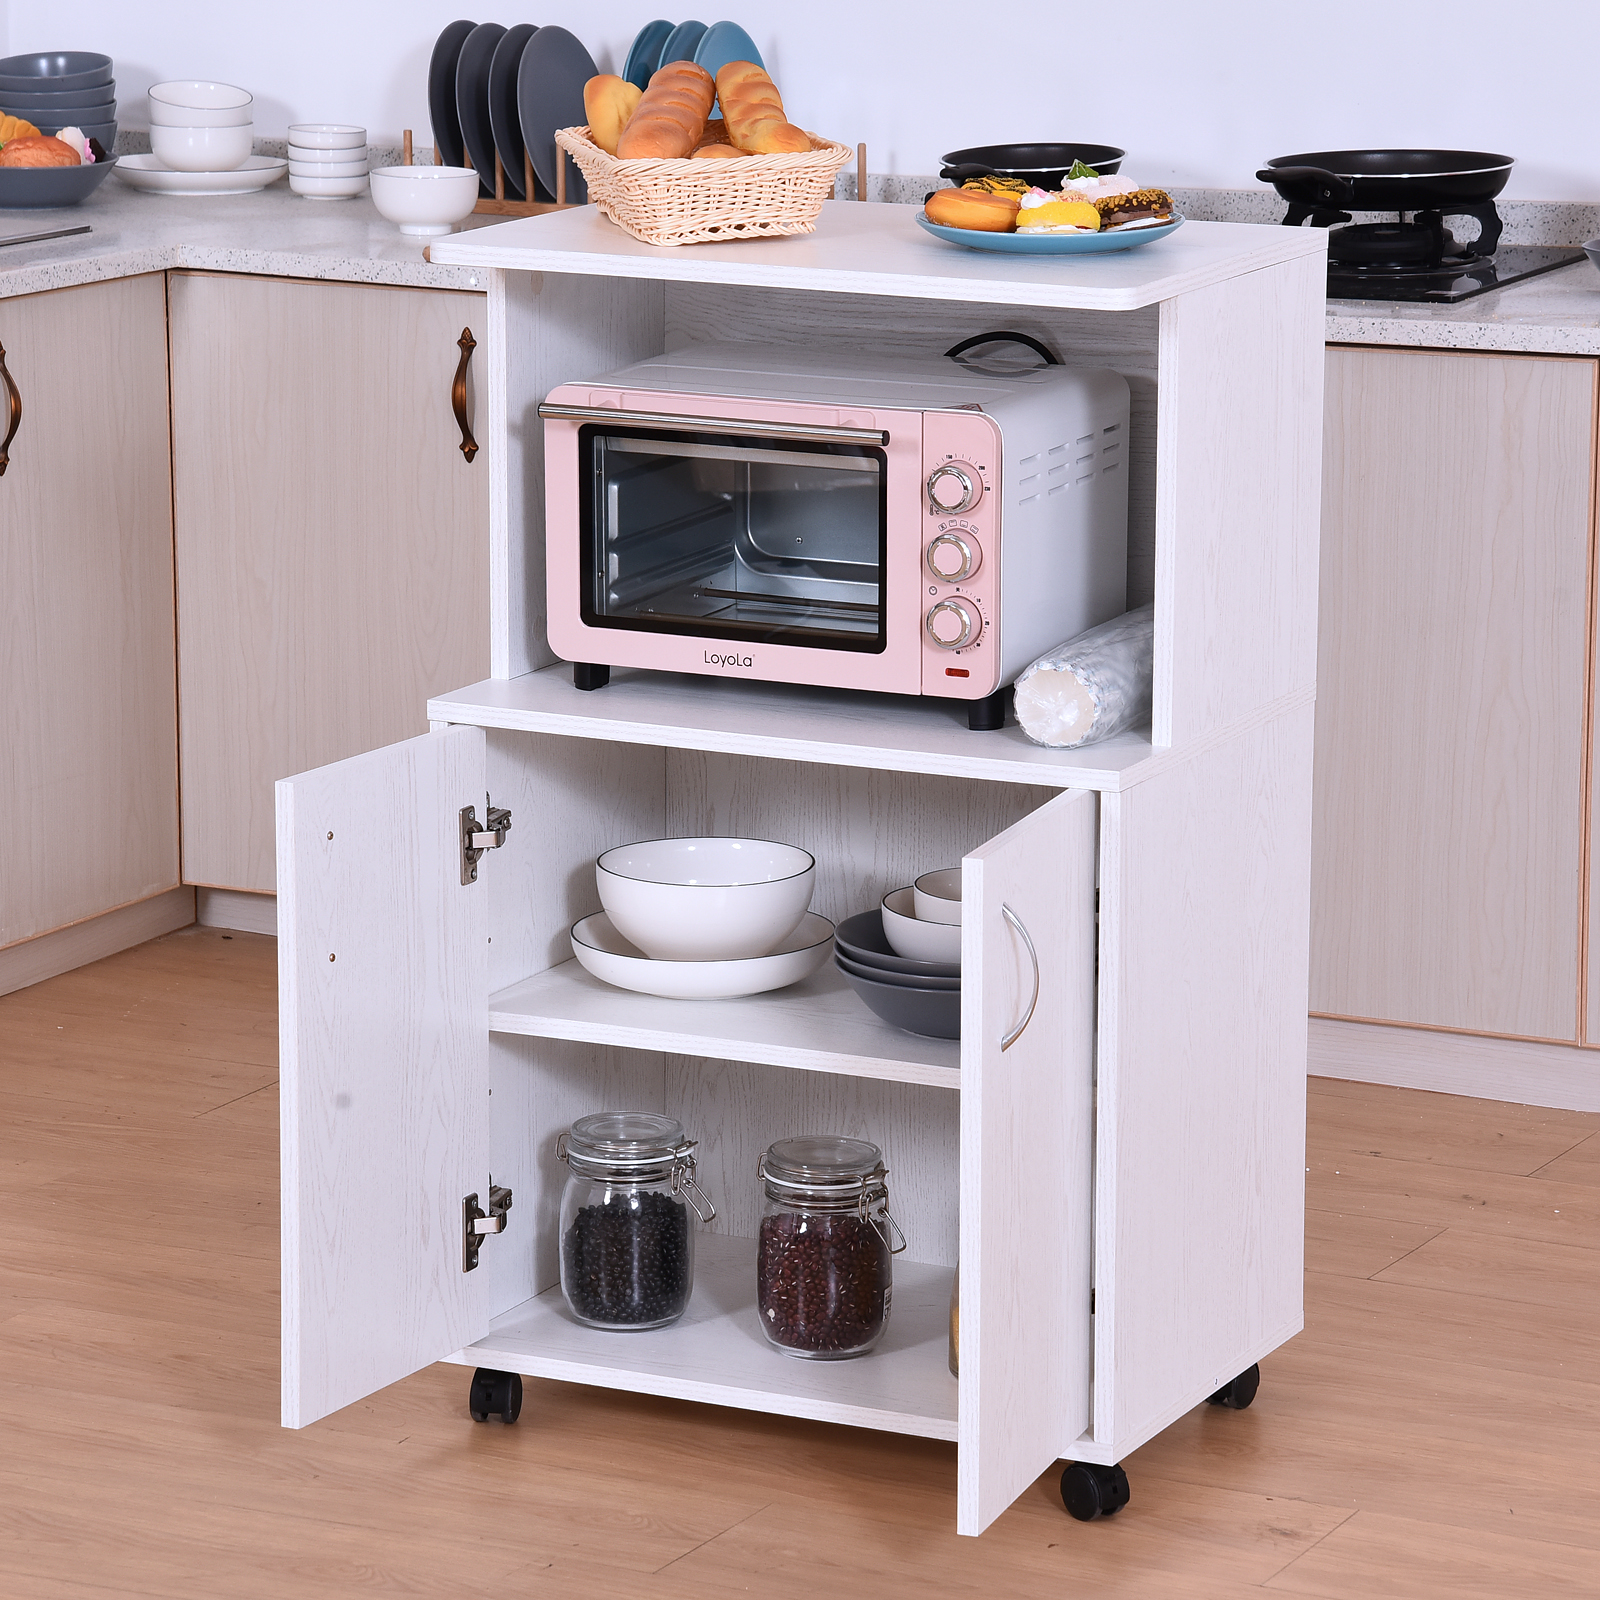 Wondrous Details About Homcom Rolling Kitchen Trolley Microwave Cart 2 Door Cabinet Shelves White Home Remodeling Inspirations Propsscottssportslandcom